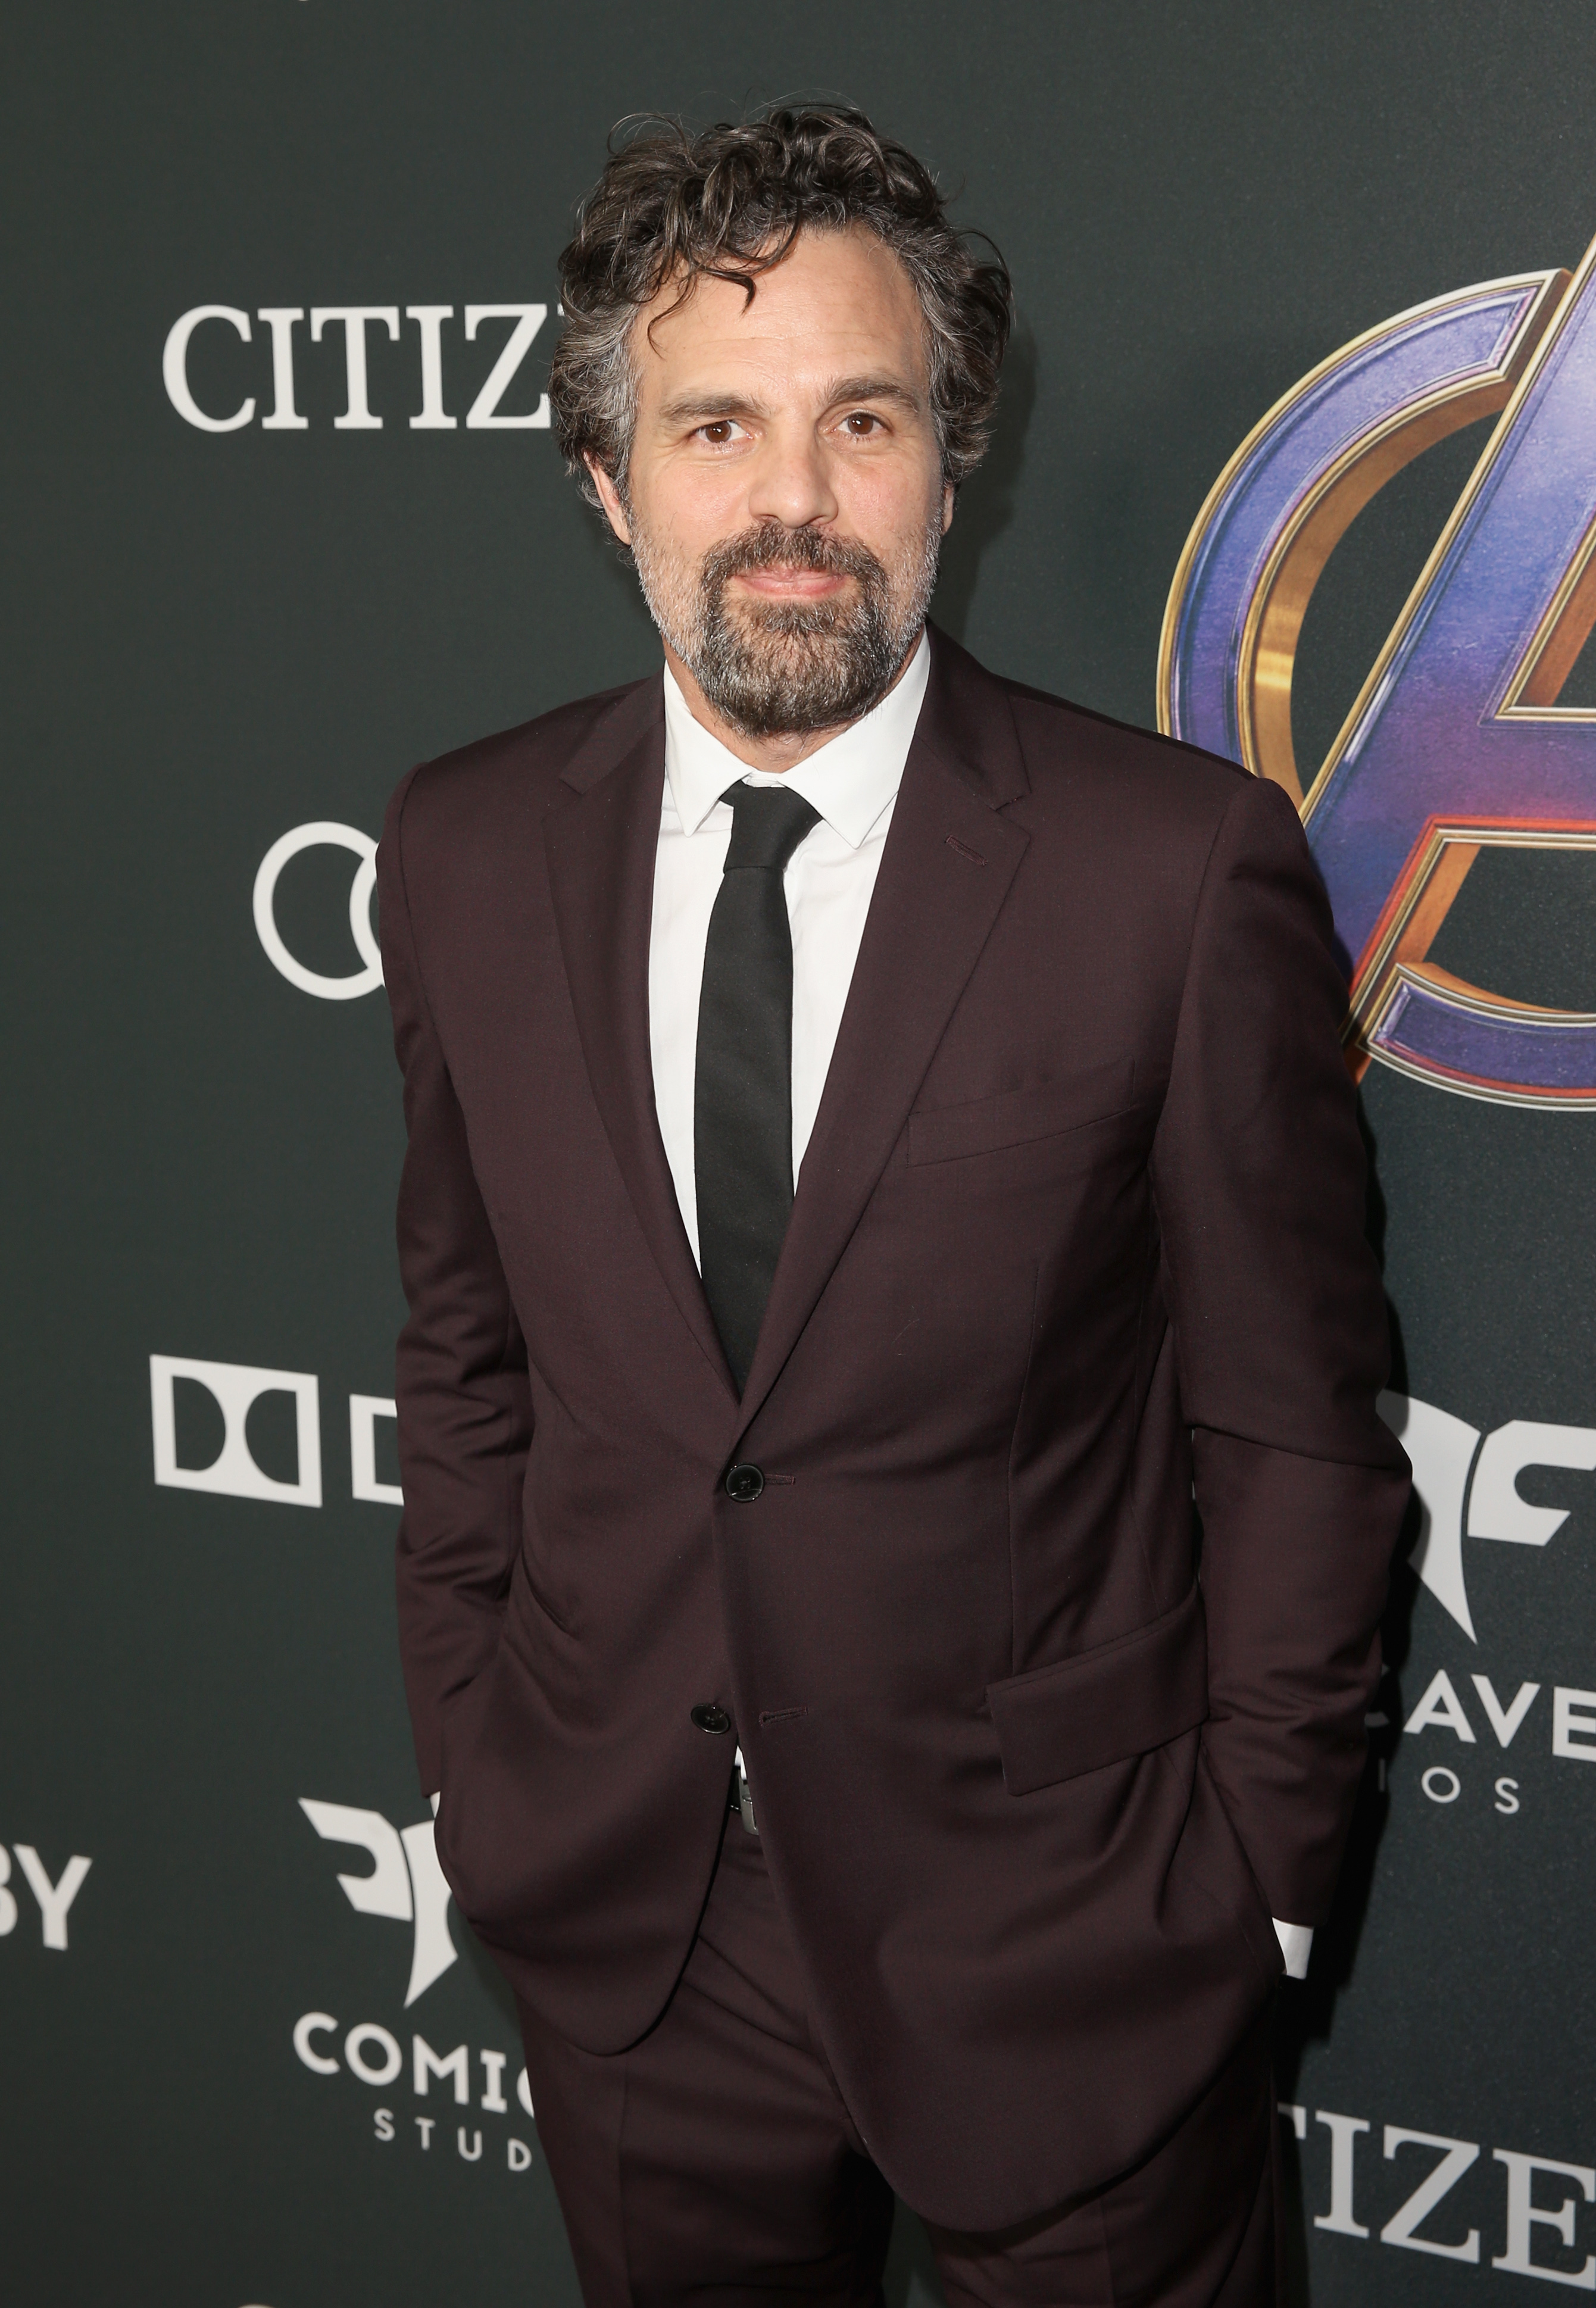 Mark Ruffalo shares his LinkedIn, Facebook, Instagram & Tinder Meme and we can't stop swooning